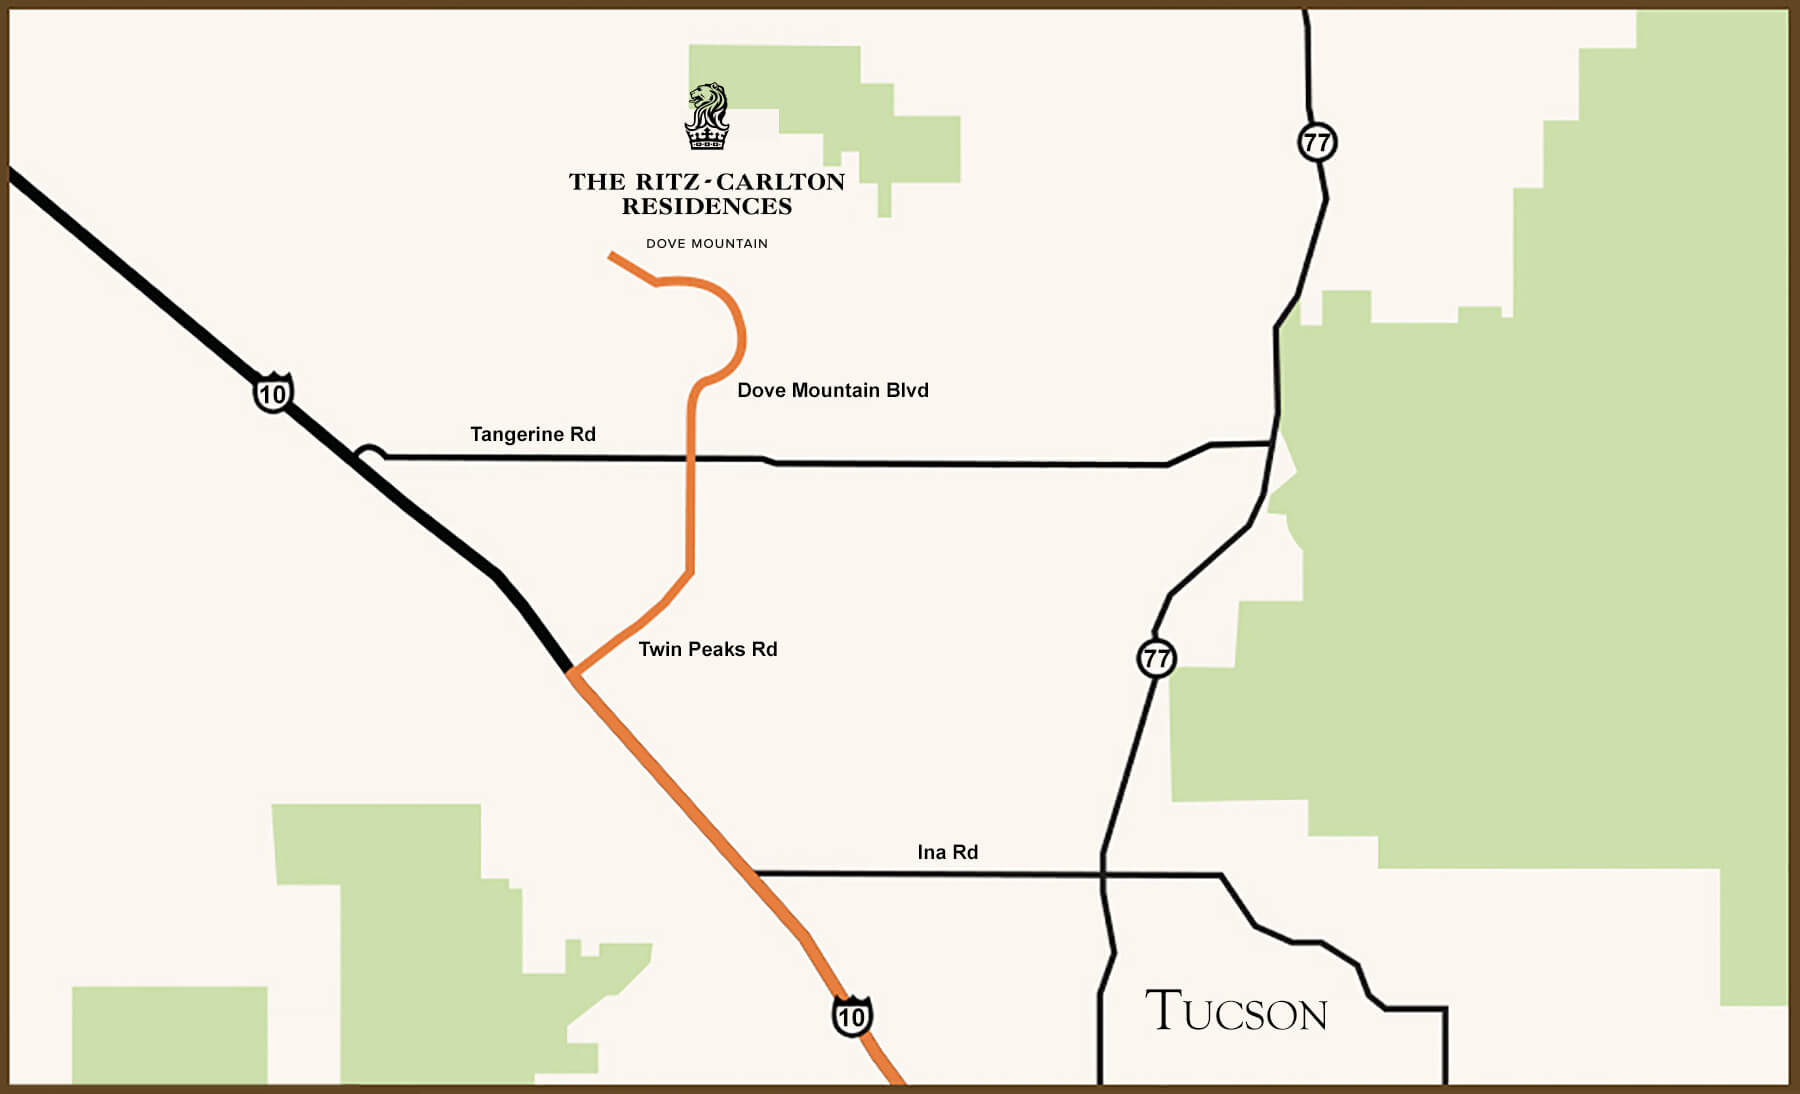 Turn by turn driving directions from Tucson to our luxury Dove Mountain real estate community located in Marana, Arizona.